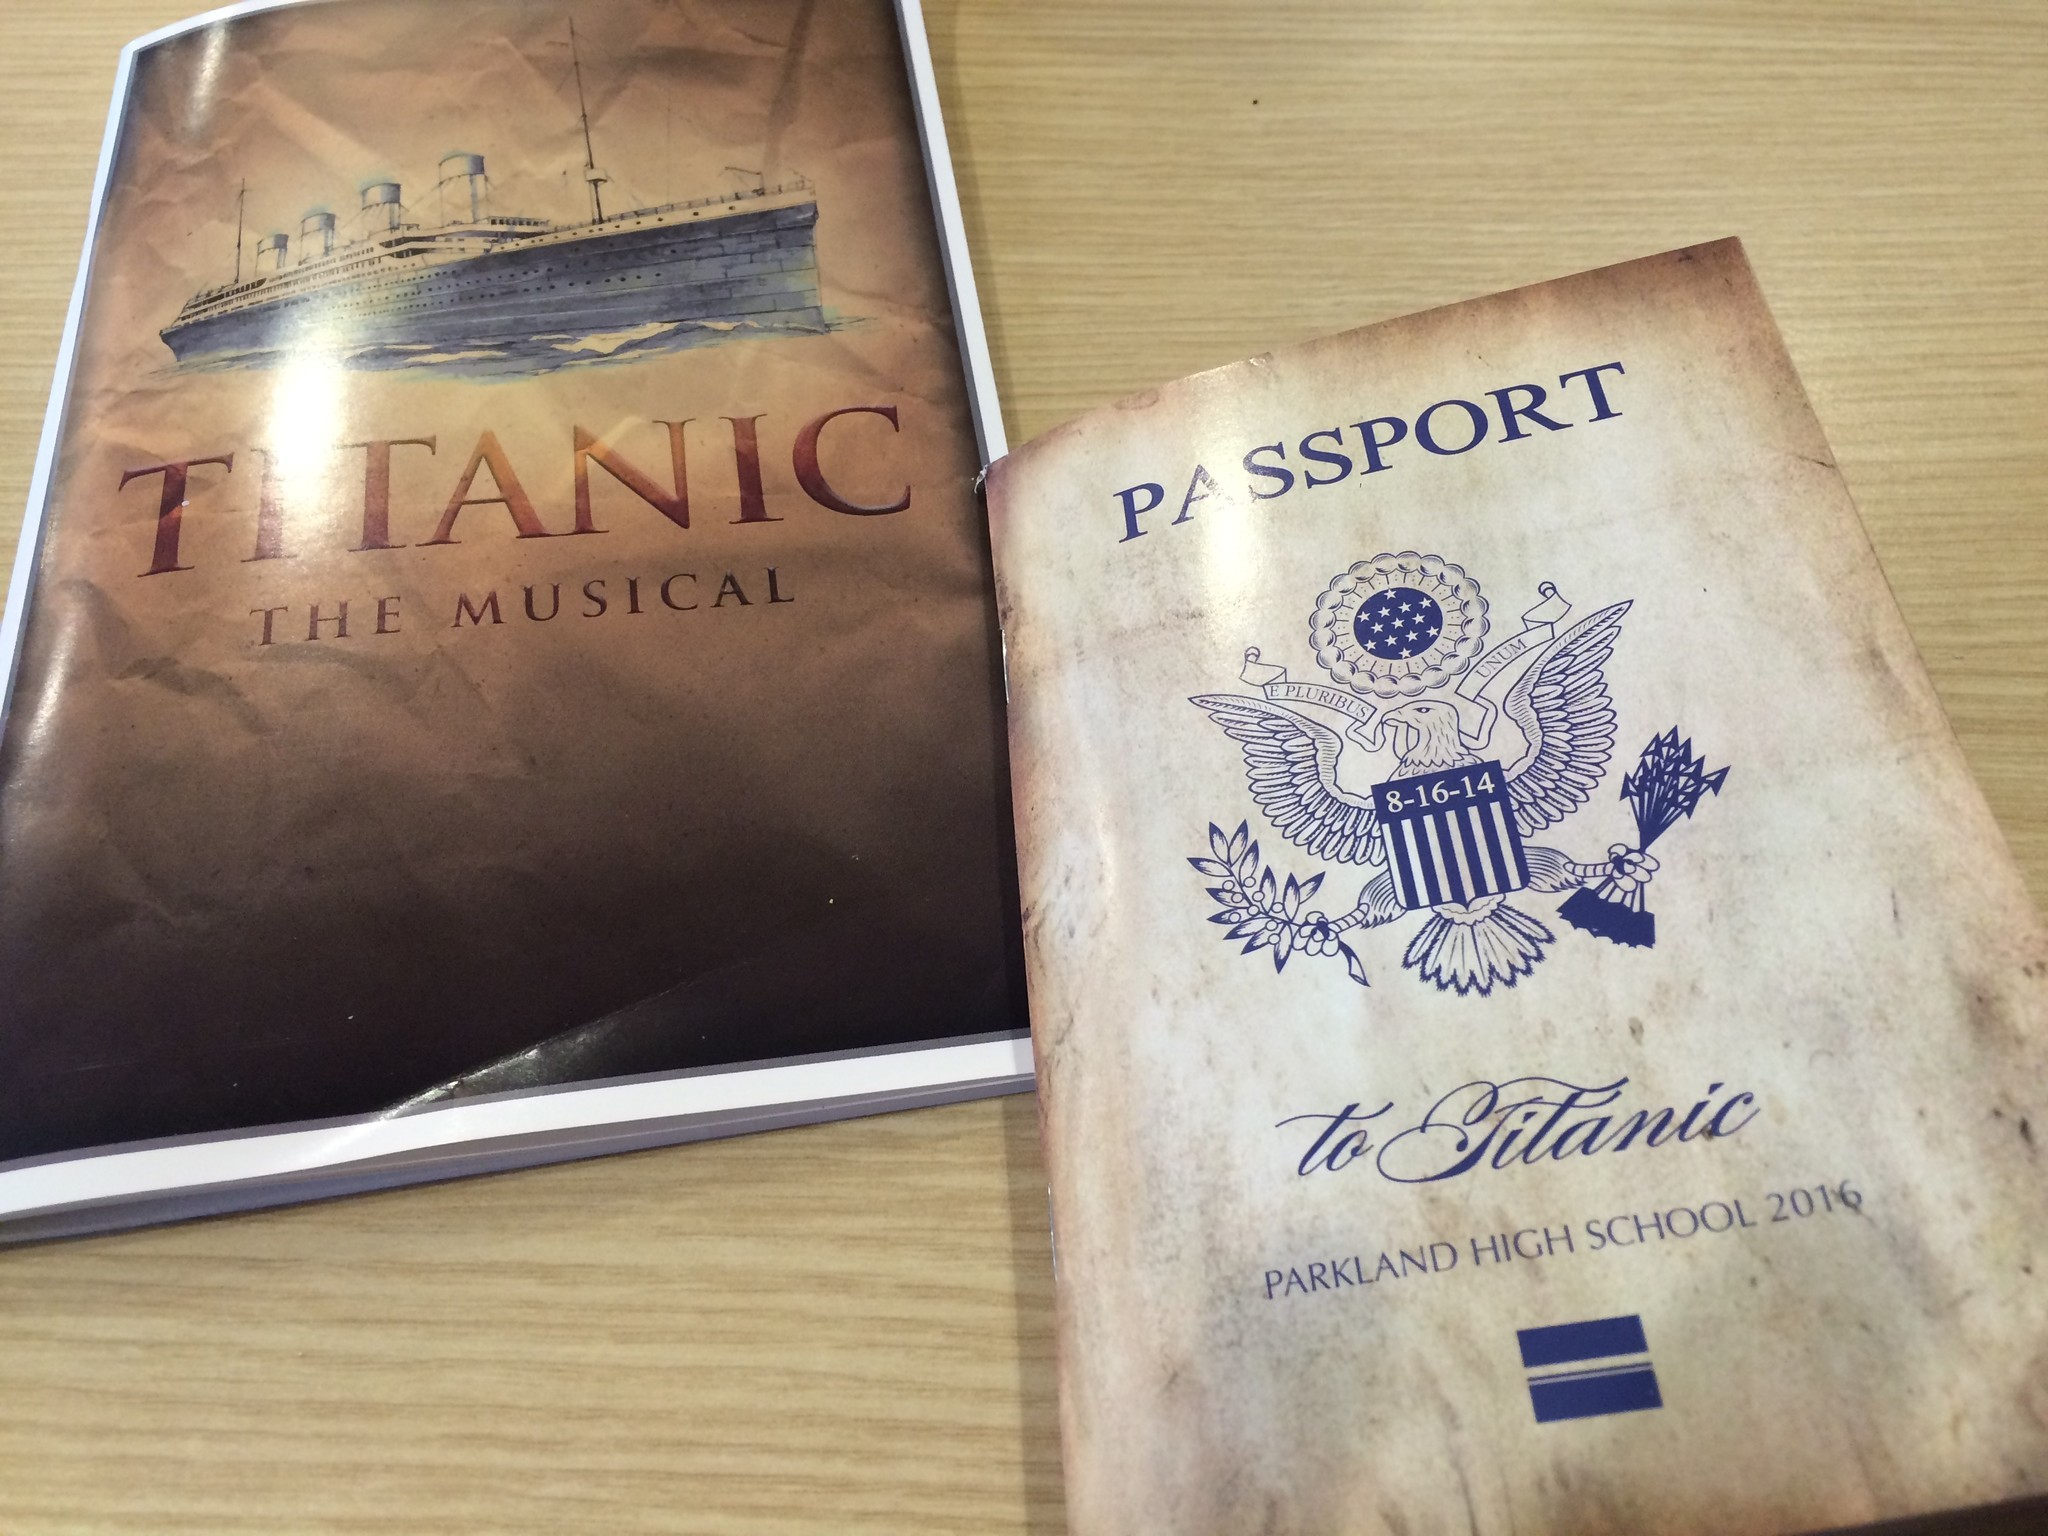 parkland s production of titanic the musical just might sail on